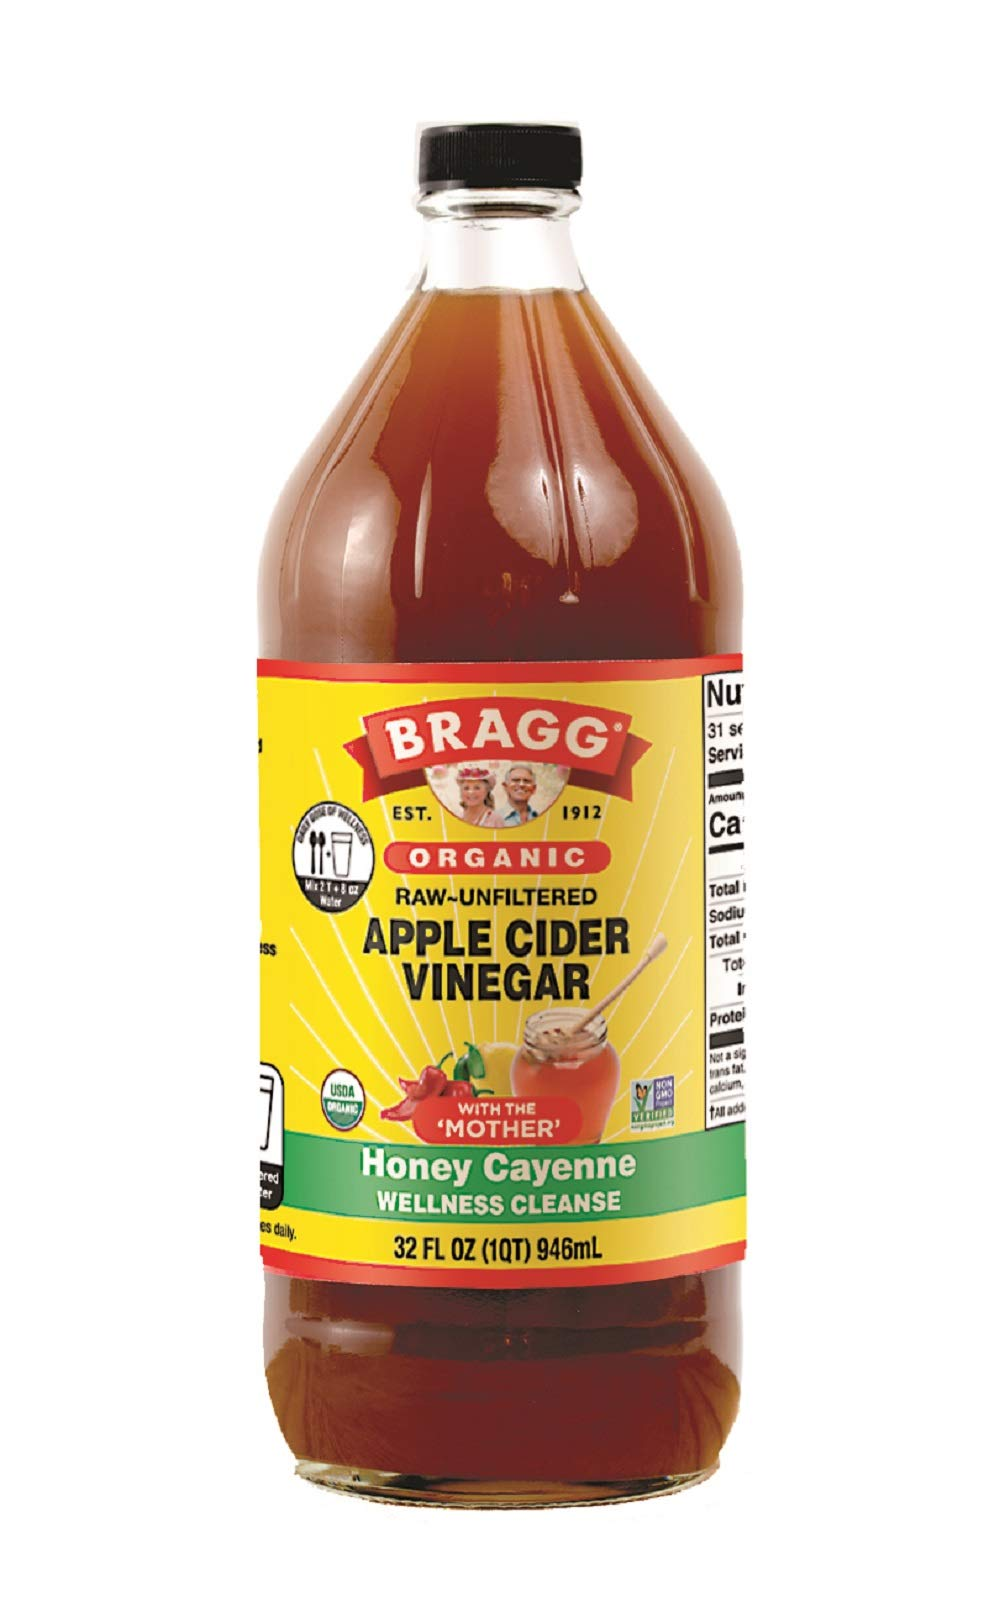 Bragg Organic Apple Cider Vinegar Honey Cayenne Wellness Cleanse – Made with ACV, Honey, Lemon Juice & Cayenne - USDA Certified Organic – Raw, Unfiltered All Natural Ingredients